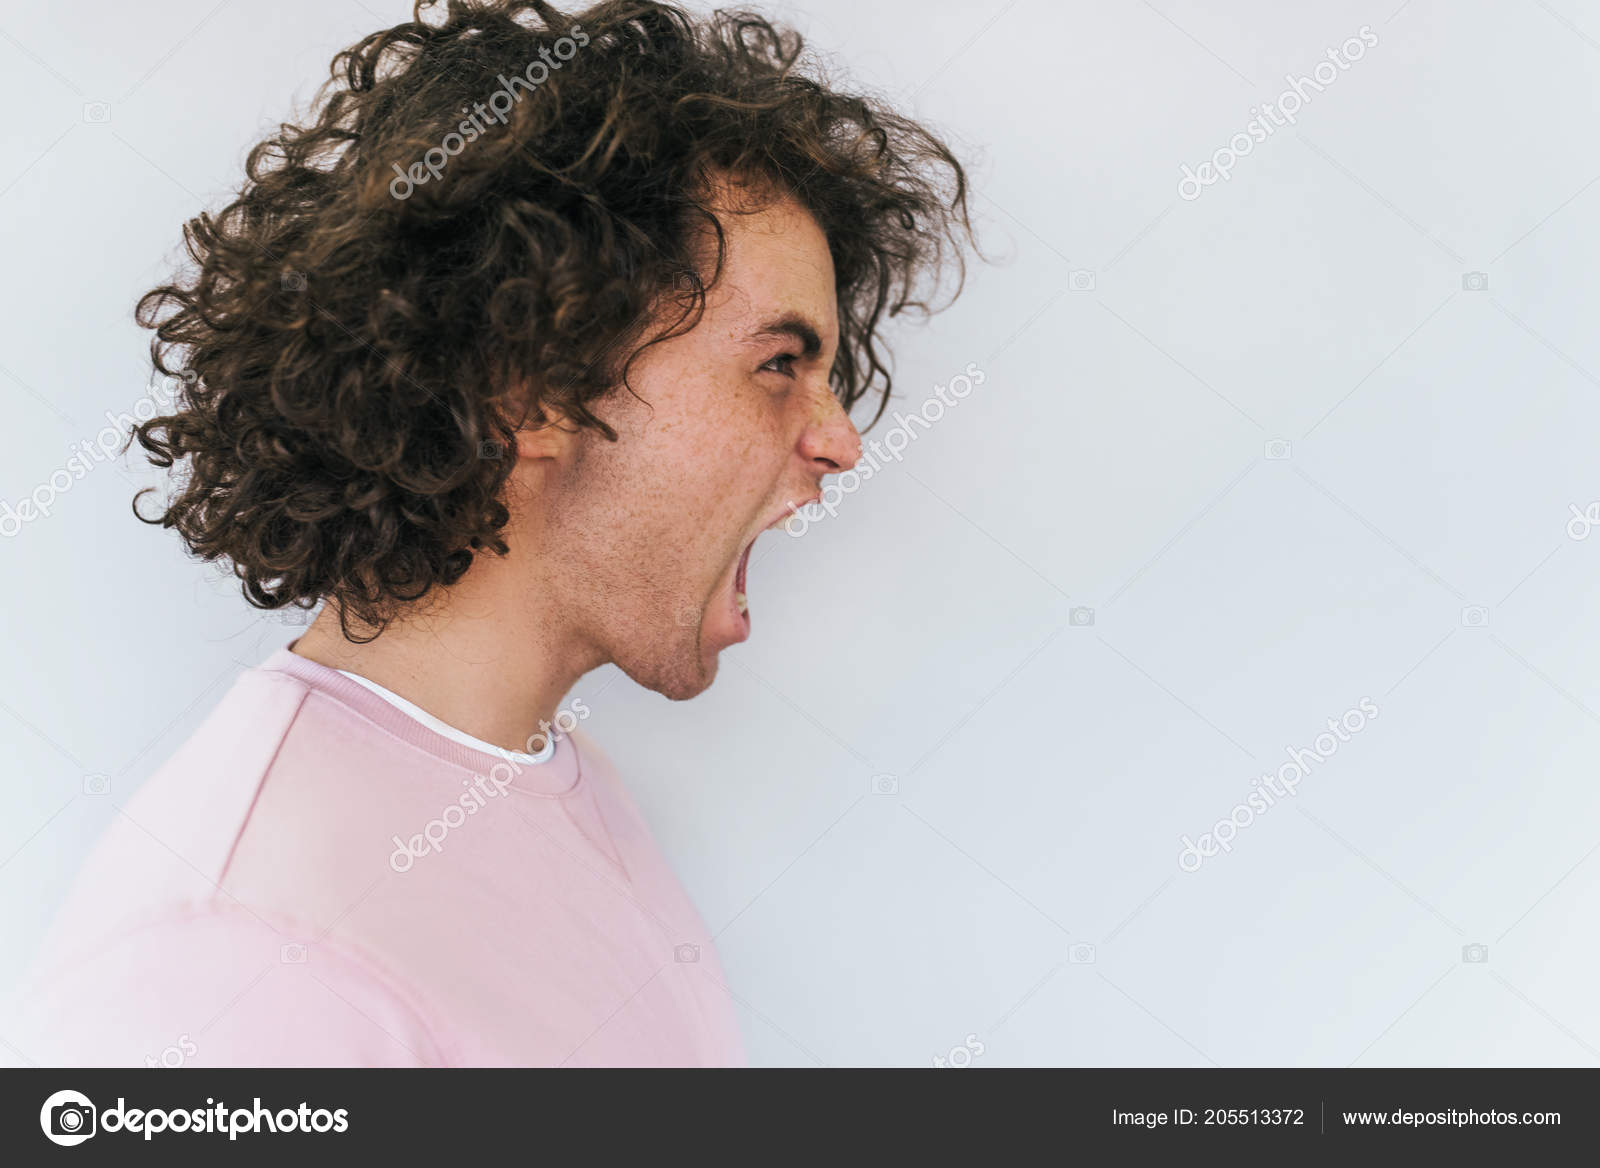 Side View Handsome Crazy Male Curly Hair Opens Mouth Widely Stock Photo Image By C Iuricazac 205513372